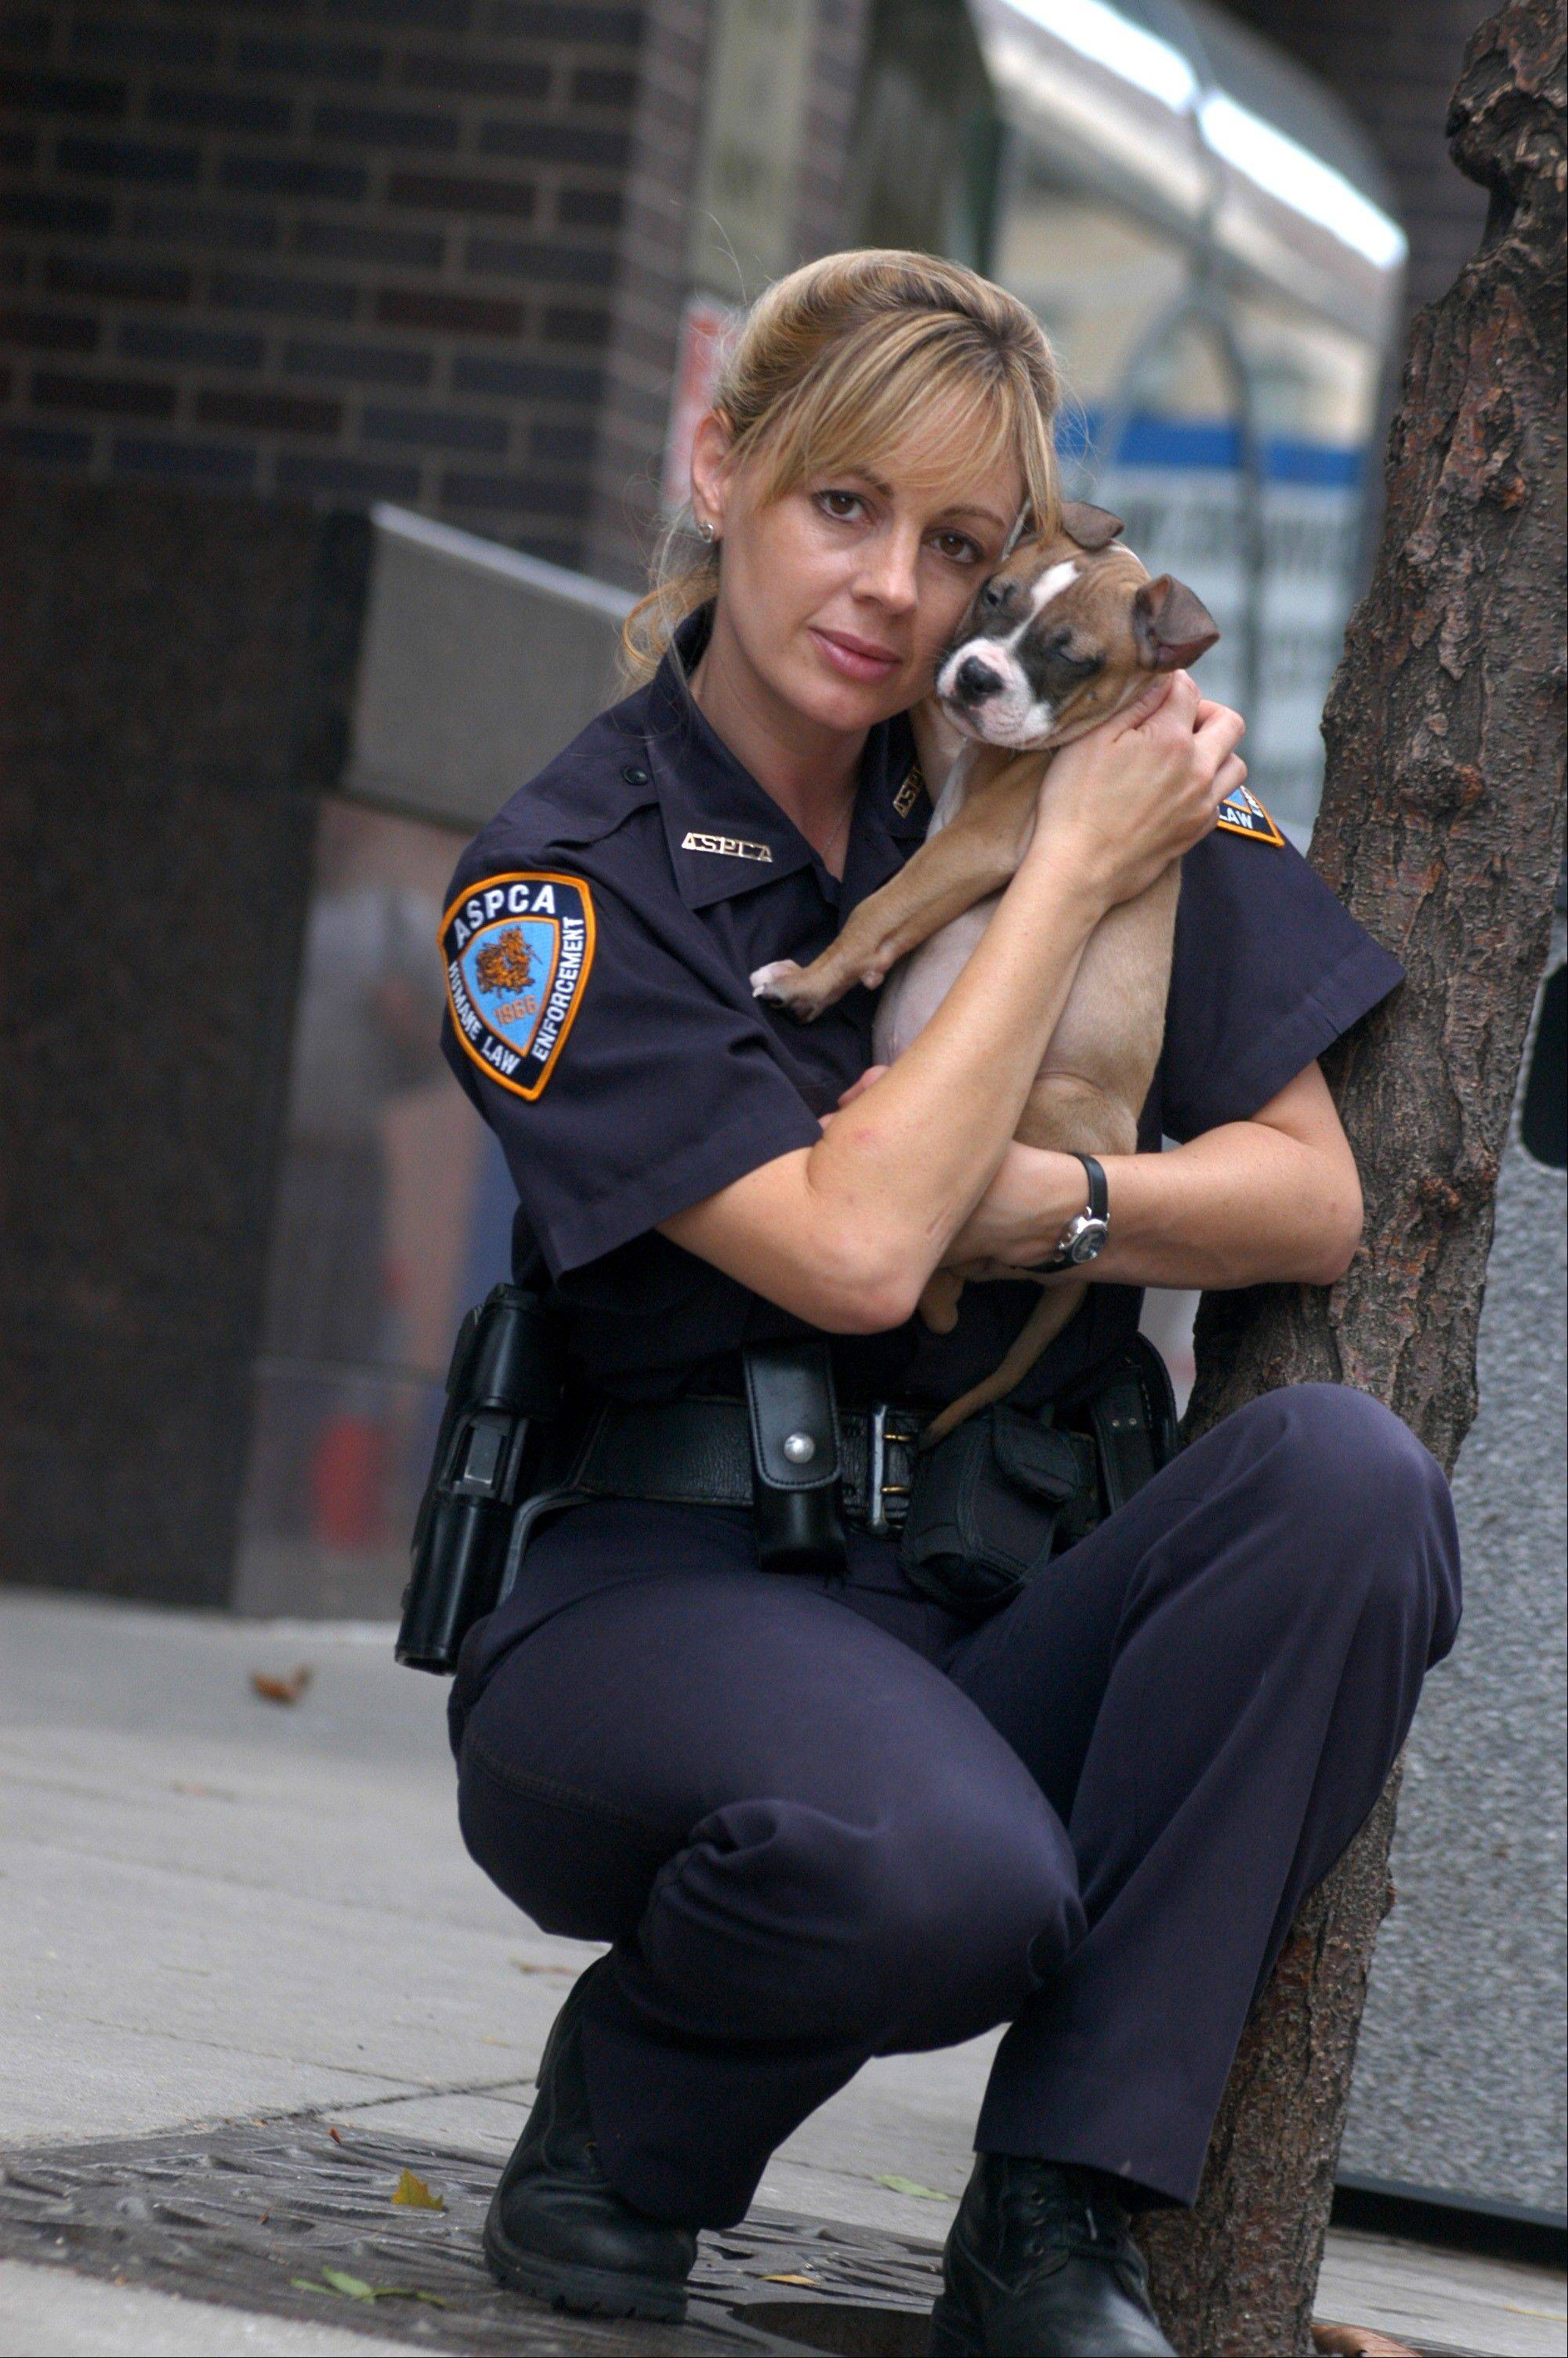 This 2004 photo provided by Animal Planet shows investigator Annemarie Lucas of the Humane Law Enforcement division of the American Society for the Prevention of Cruelty to Animals with a rescued dog in New York.